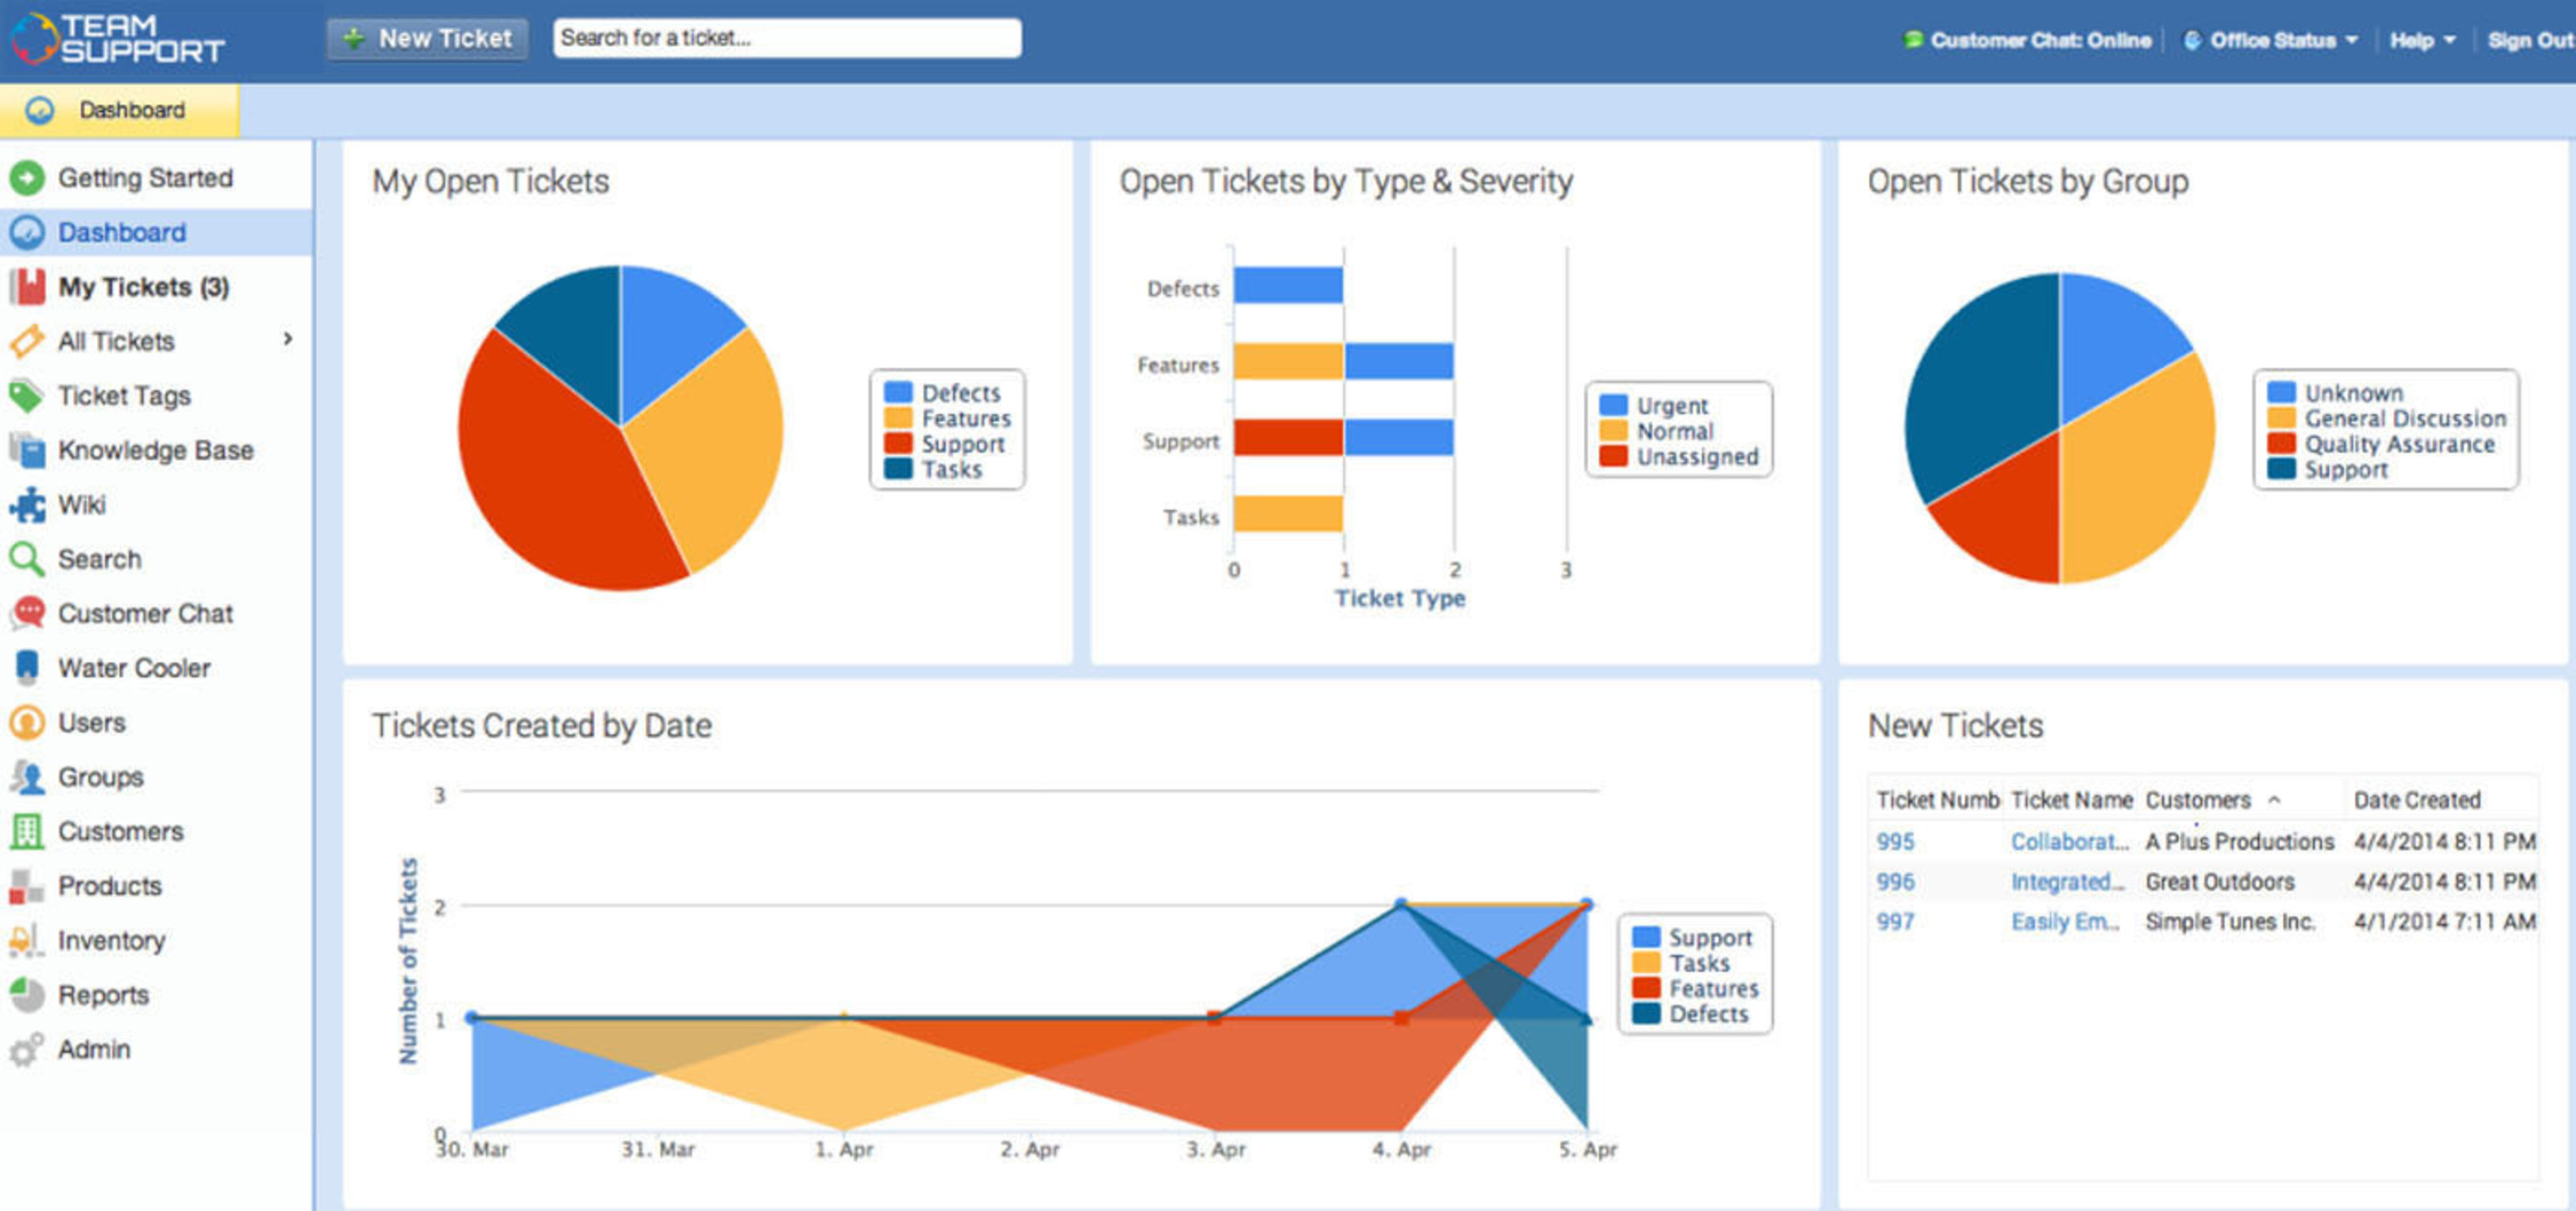 TeamSupport Help Desk Software Unveils New Best-in-Class Reporting and Analytics Features. ...